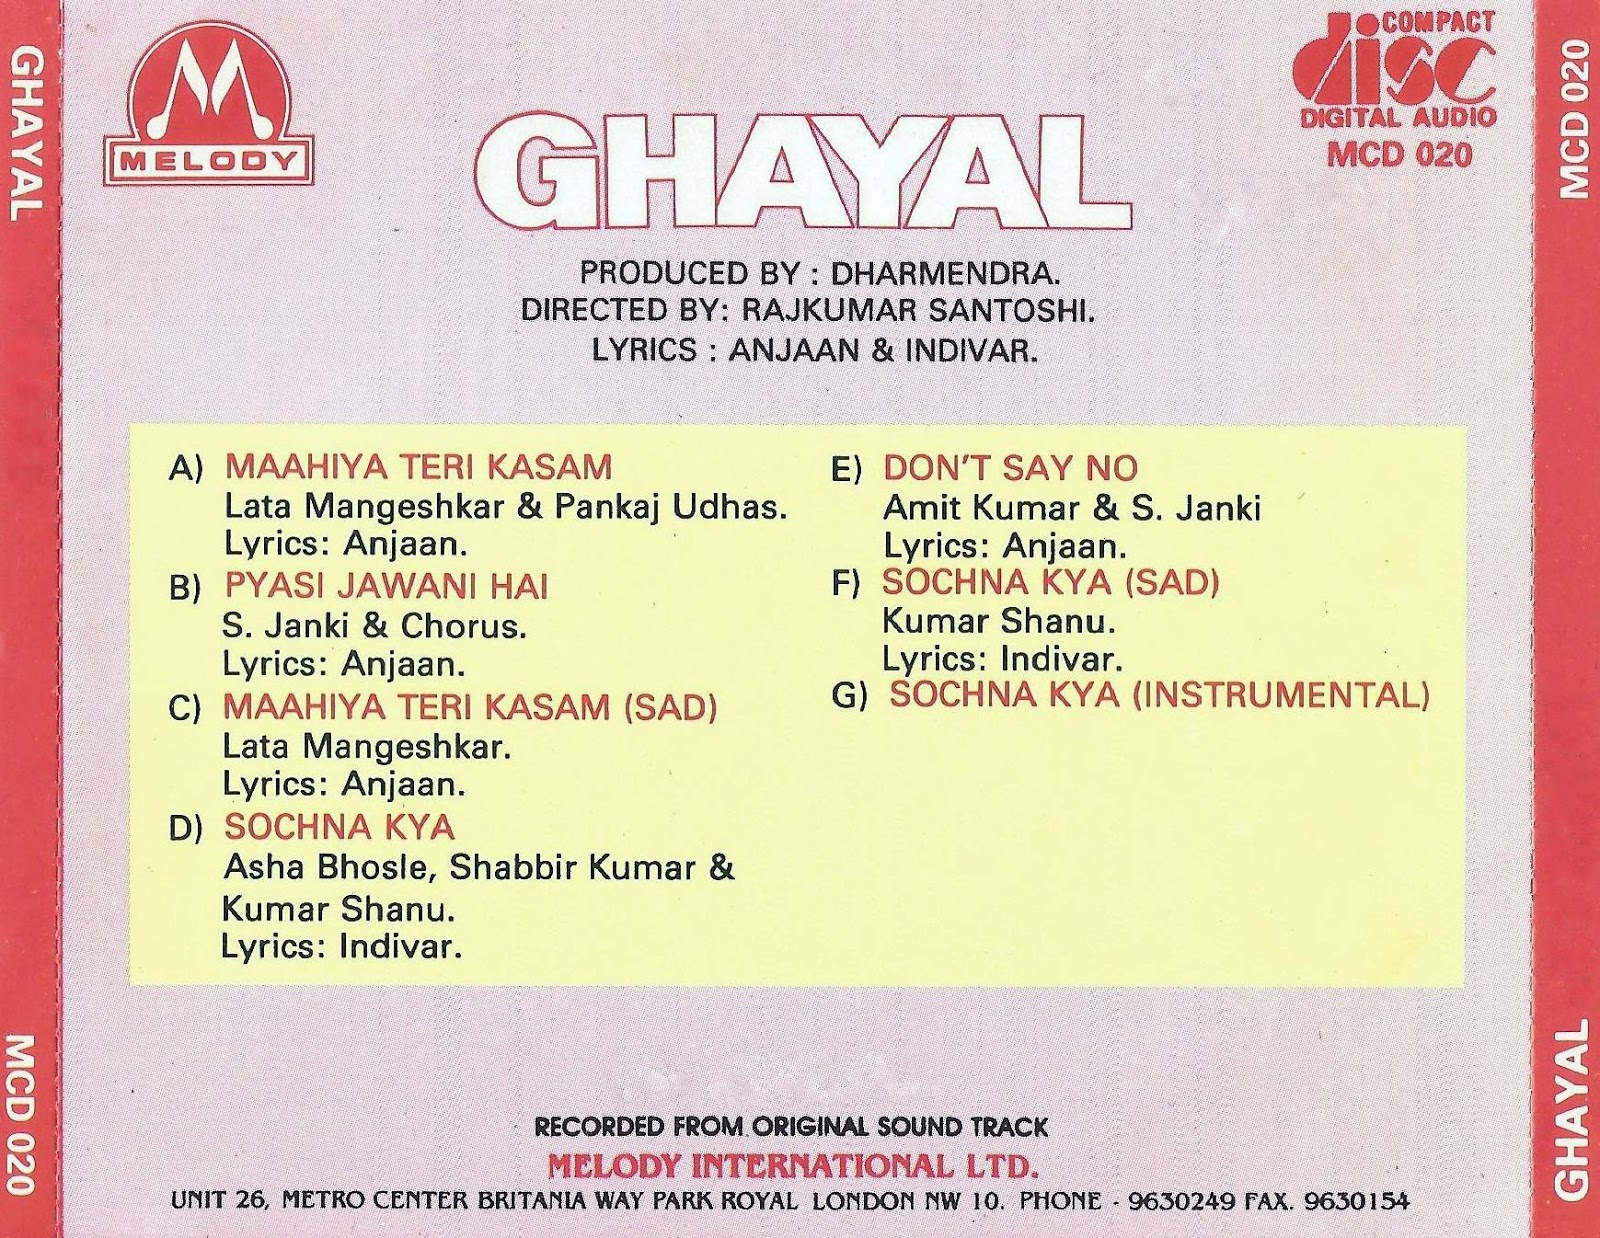 Bollywood Movies Flac, Mp3 Songs Downloaded Here    : Movie